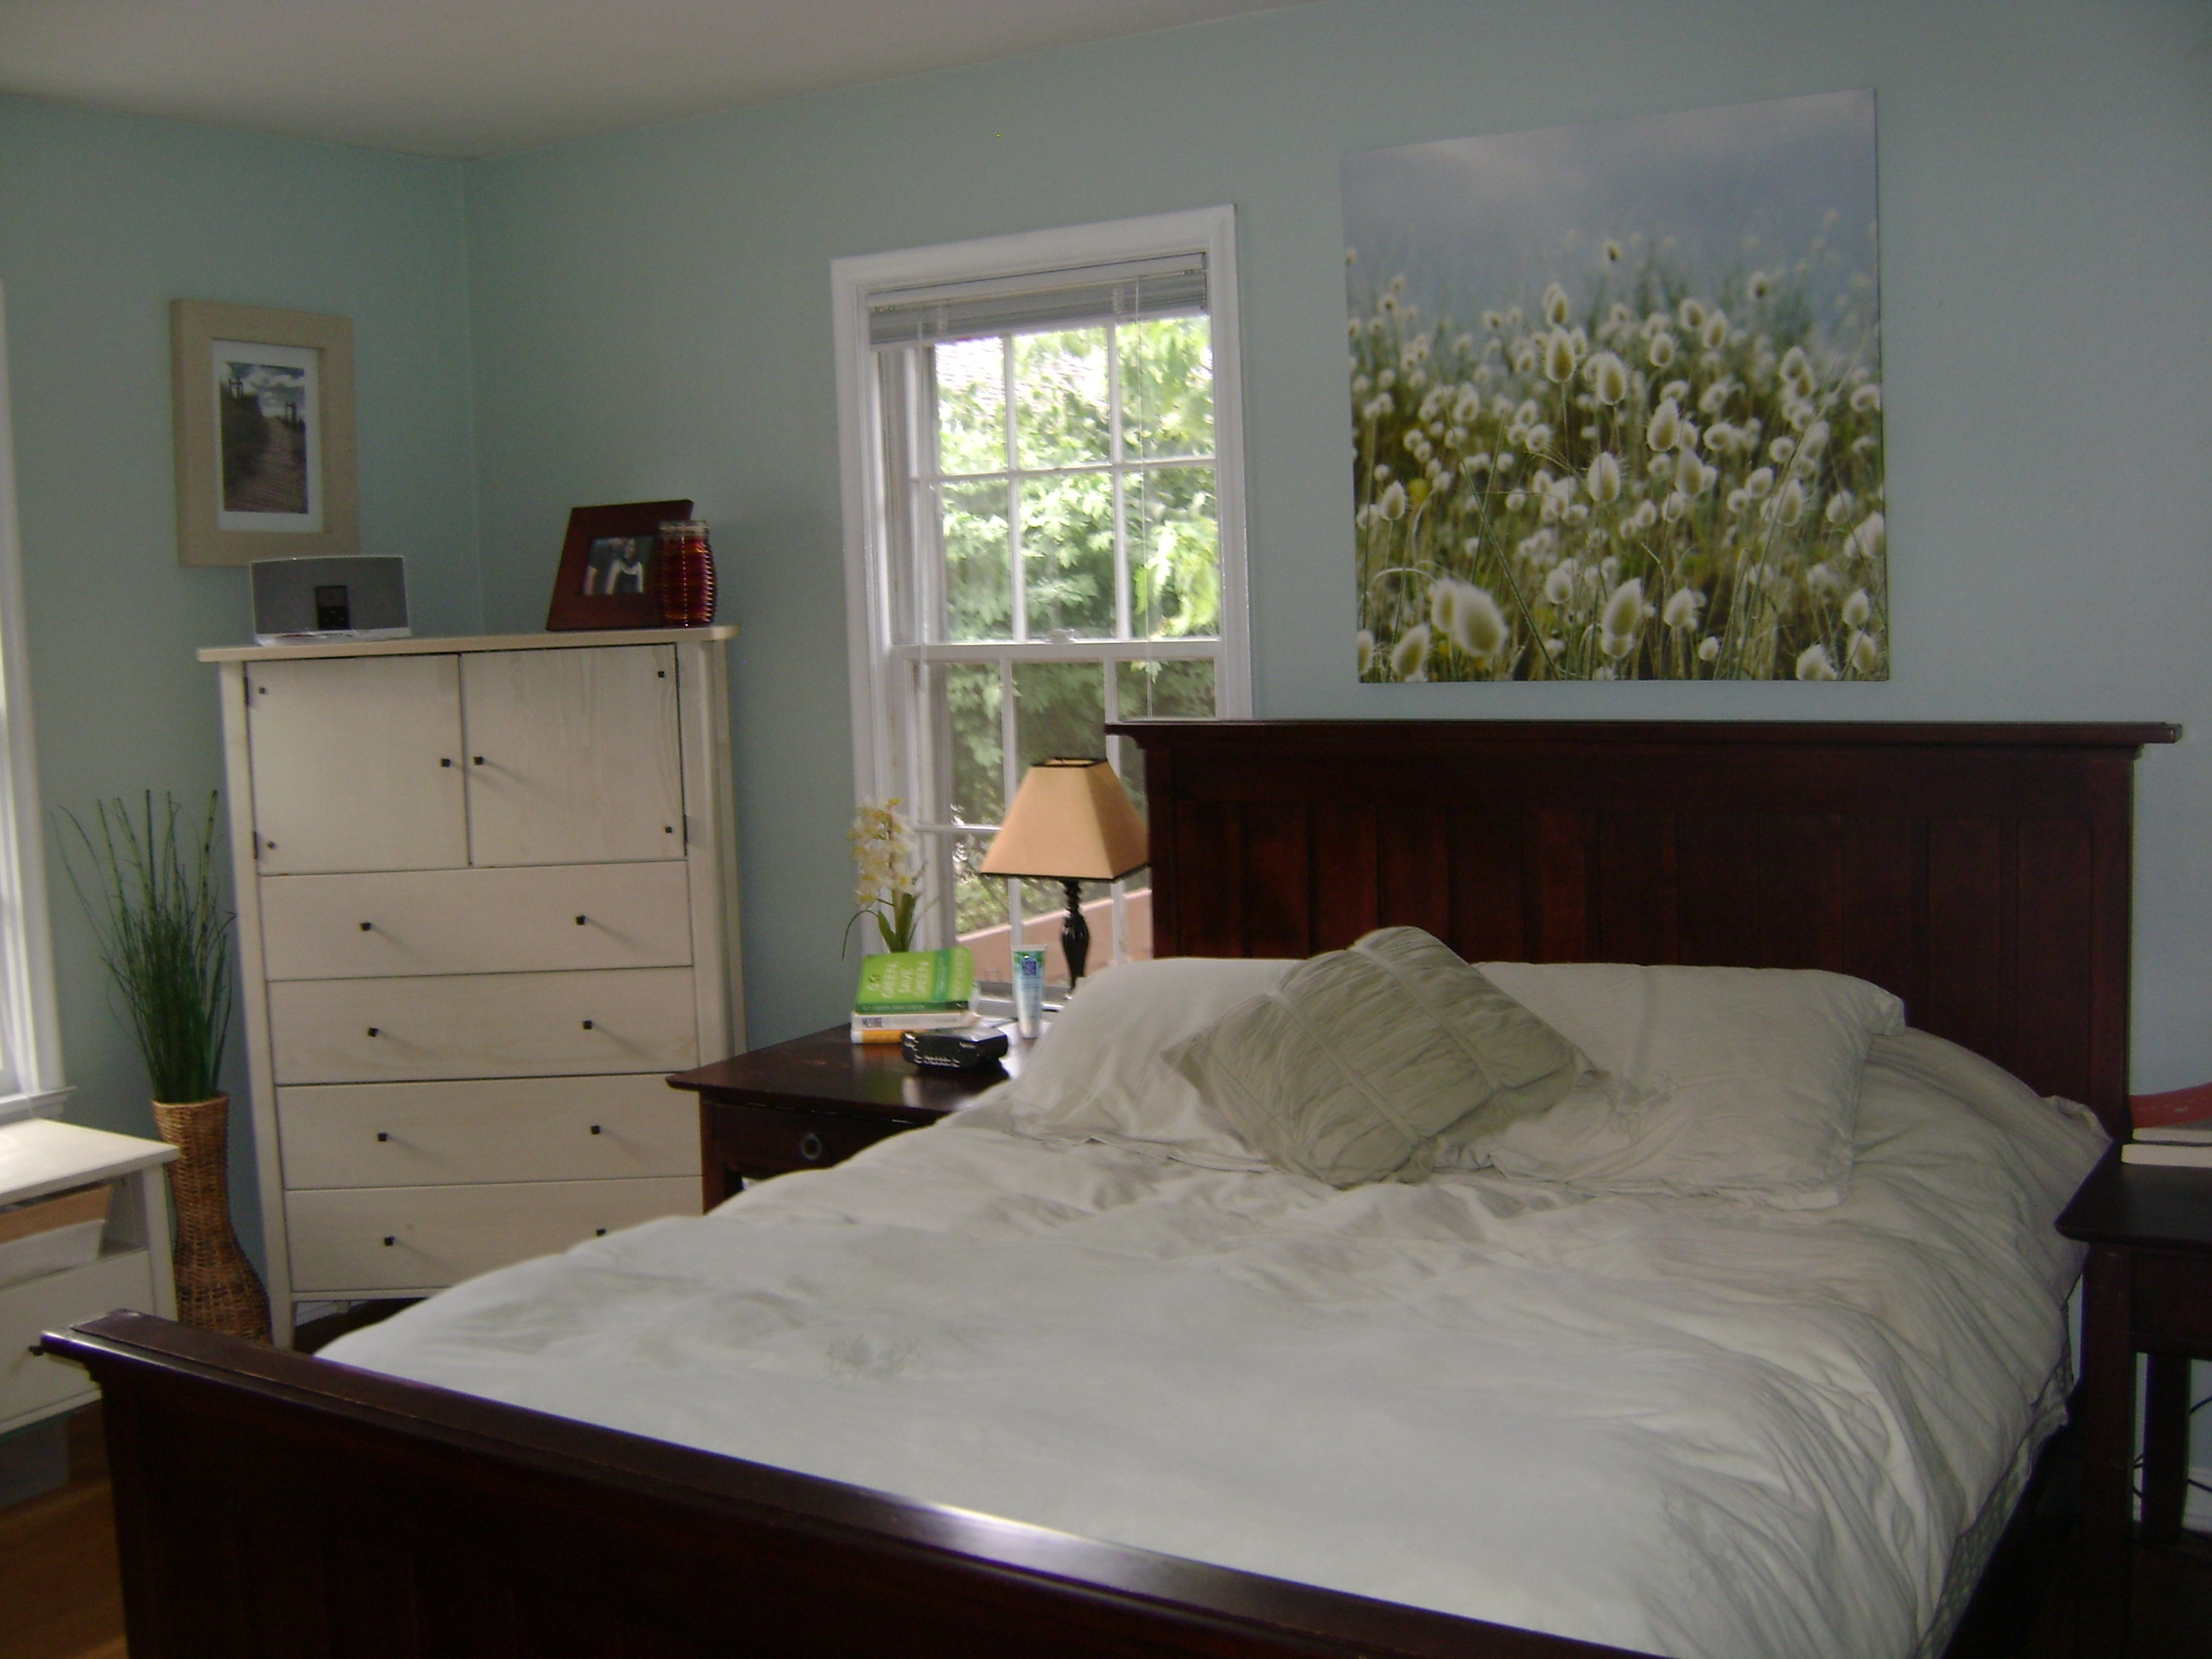 Our Master Bedroom Before And After